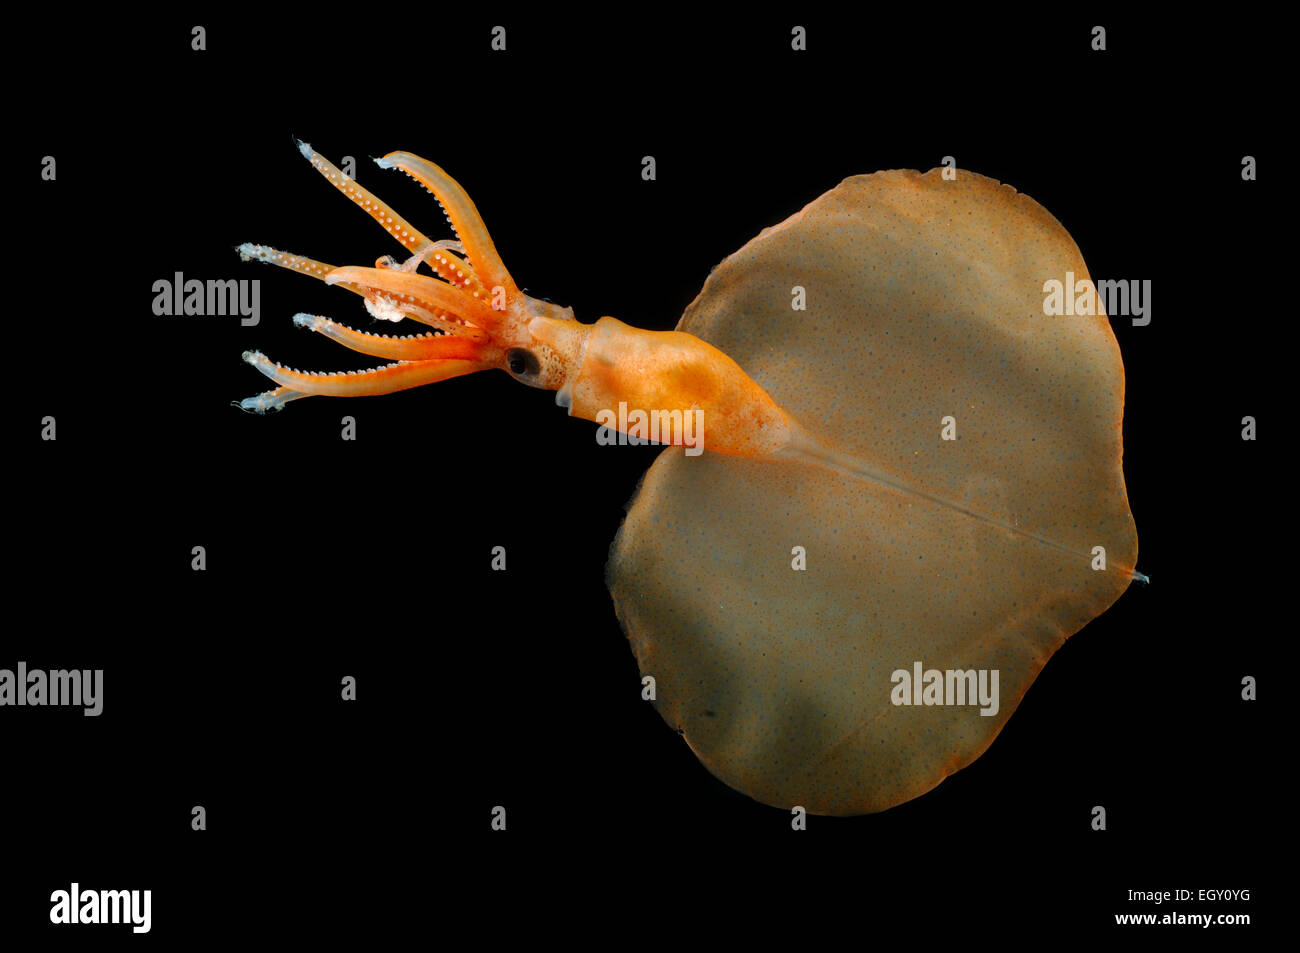 Magnapinna atlantica, previously known as 'Magnapinna sp. A', is a species of bigfin squid known from only - Stock Image